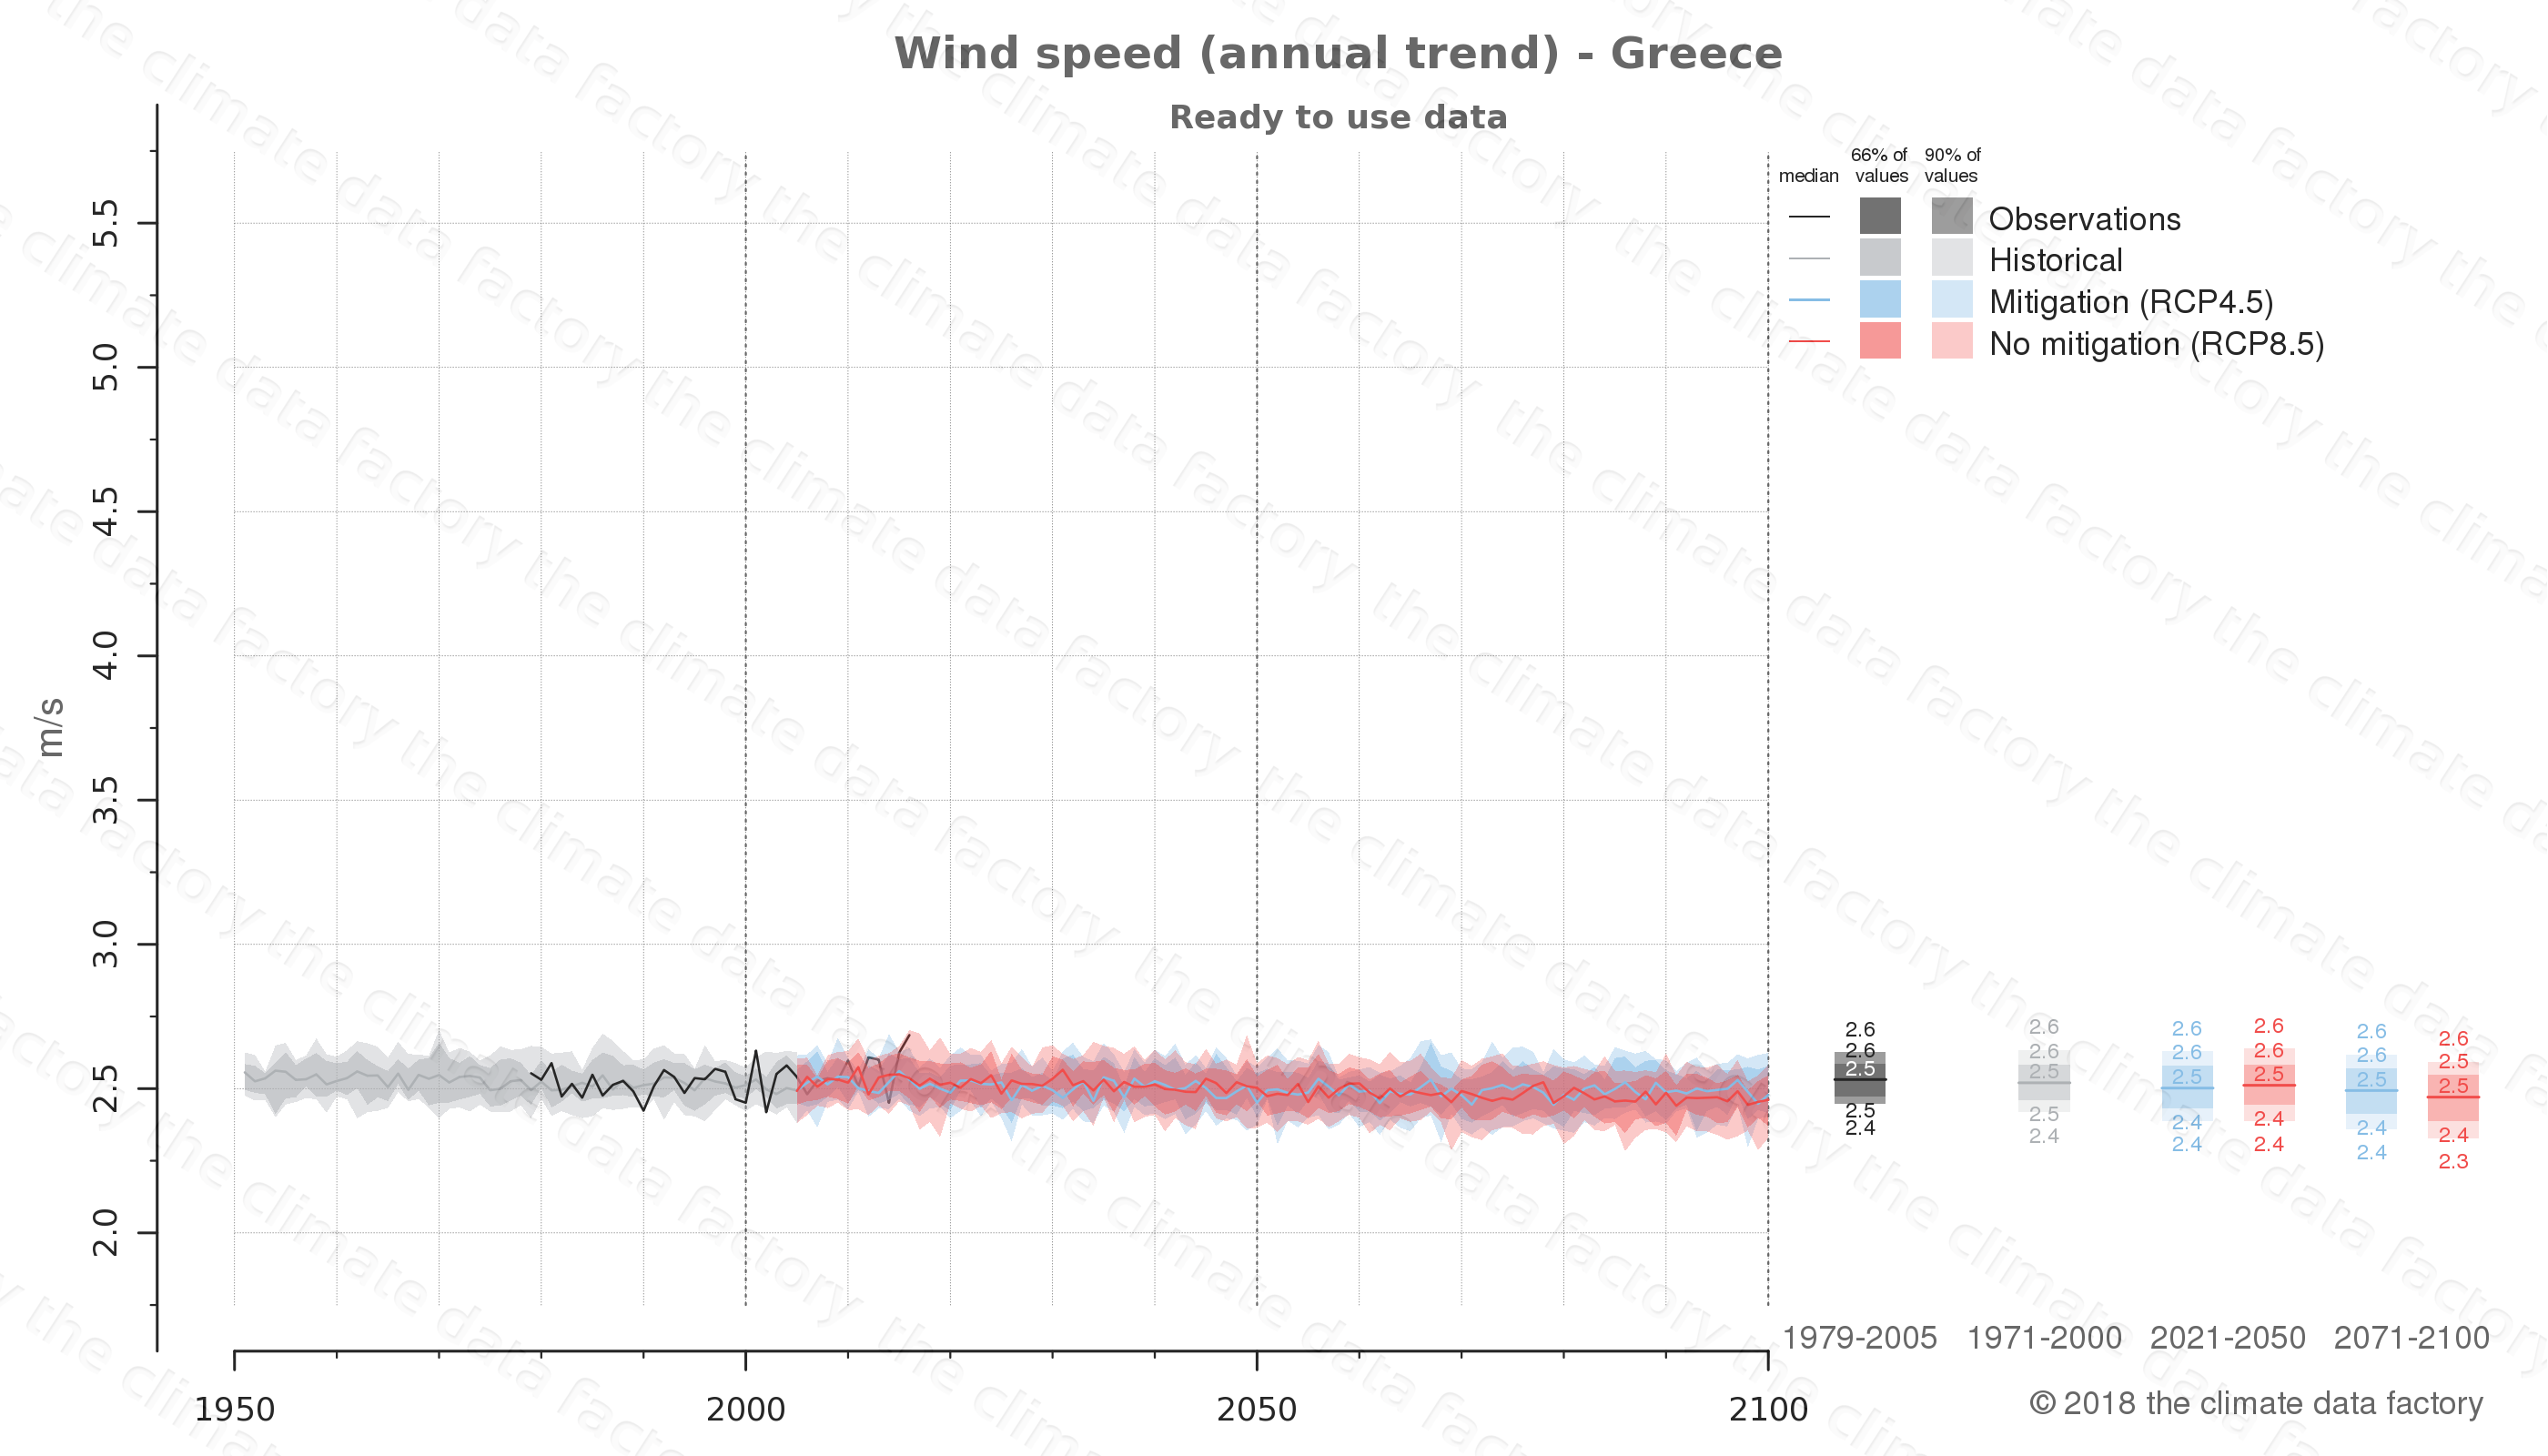 climate change data policy adaptation climate graph country data wind speed greece europe